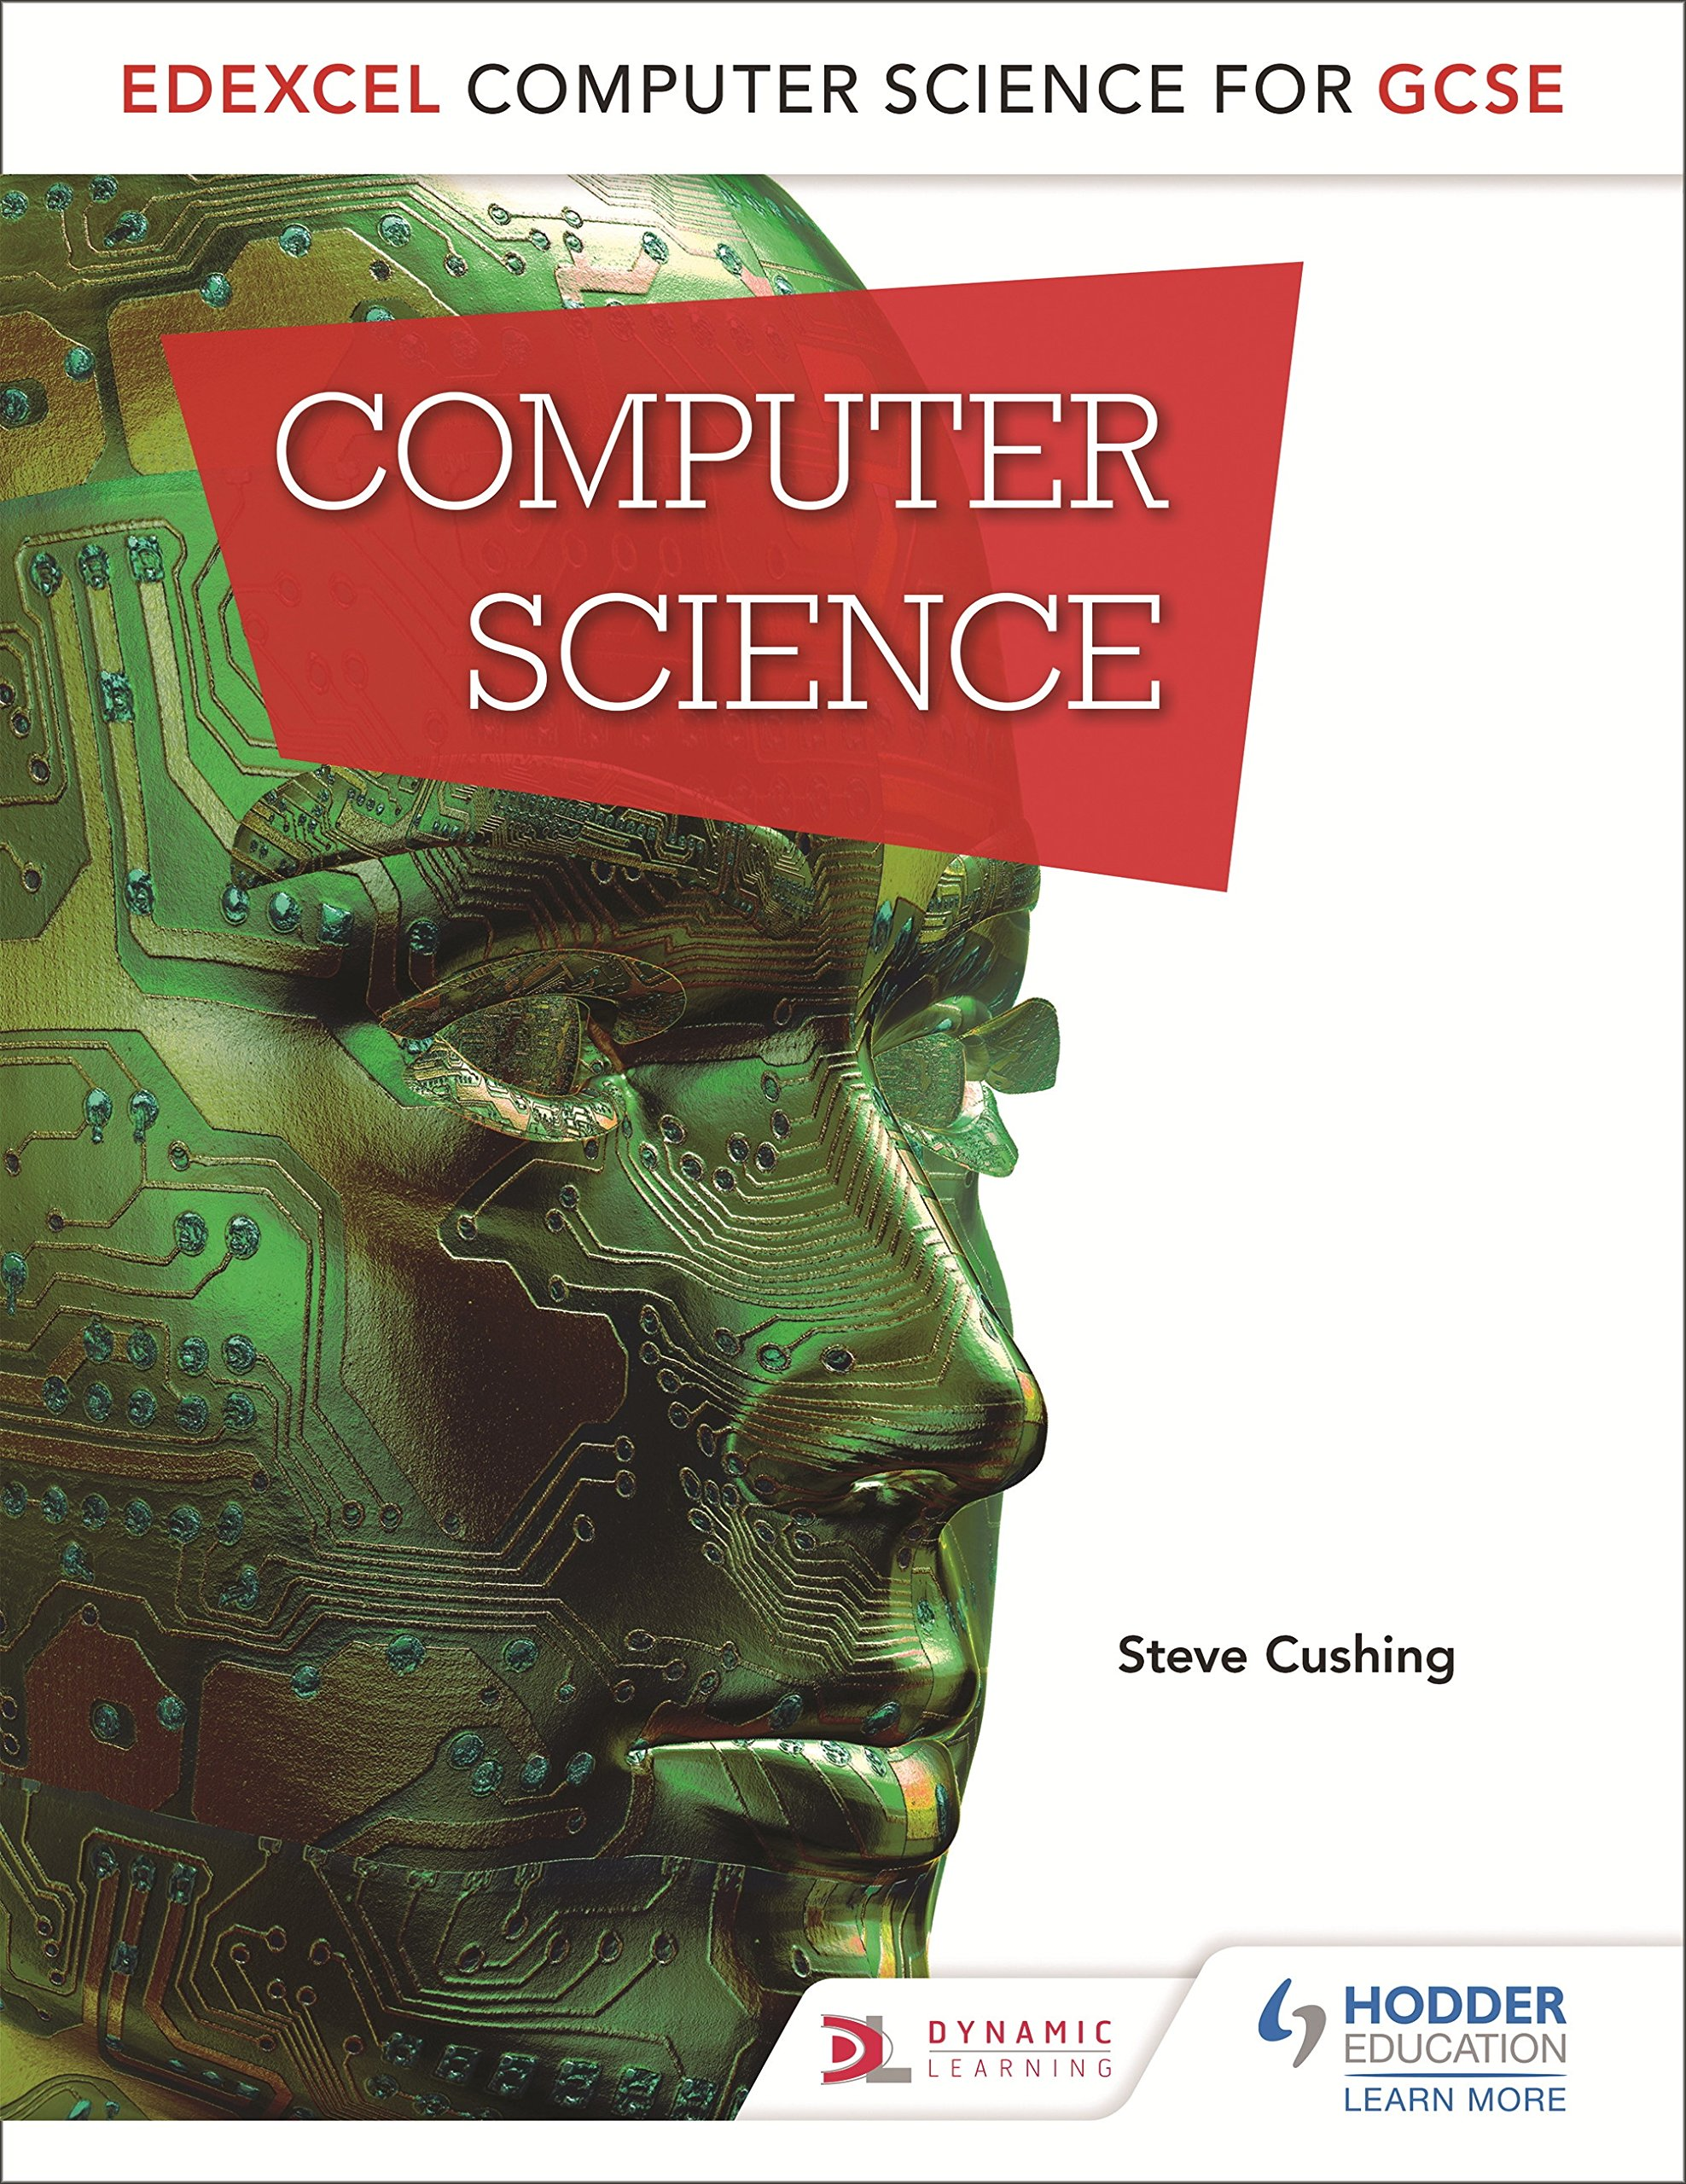 Edexcel Computer Science for GCSE Student Book (English Edition)